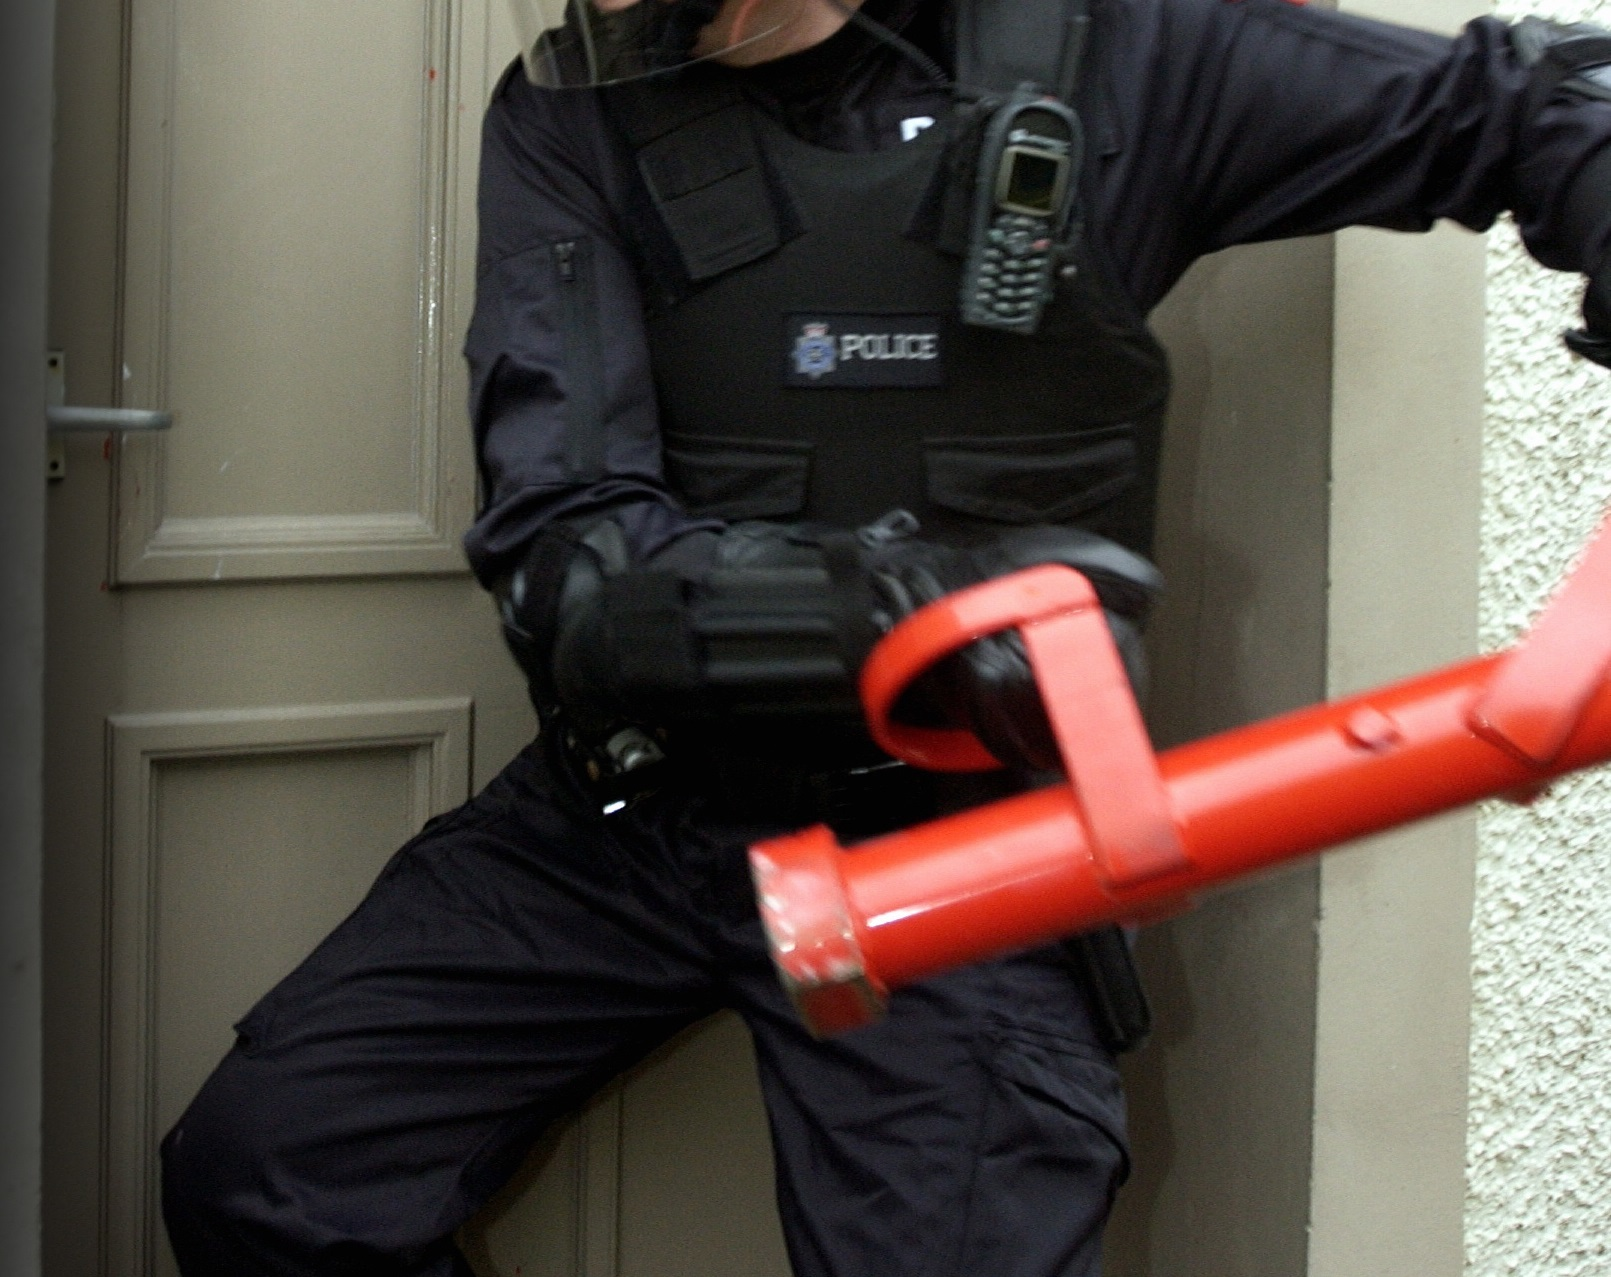 Police carried out two drugs raids in the Cardigan area yesterday